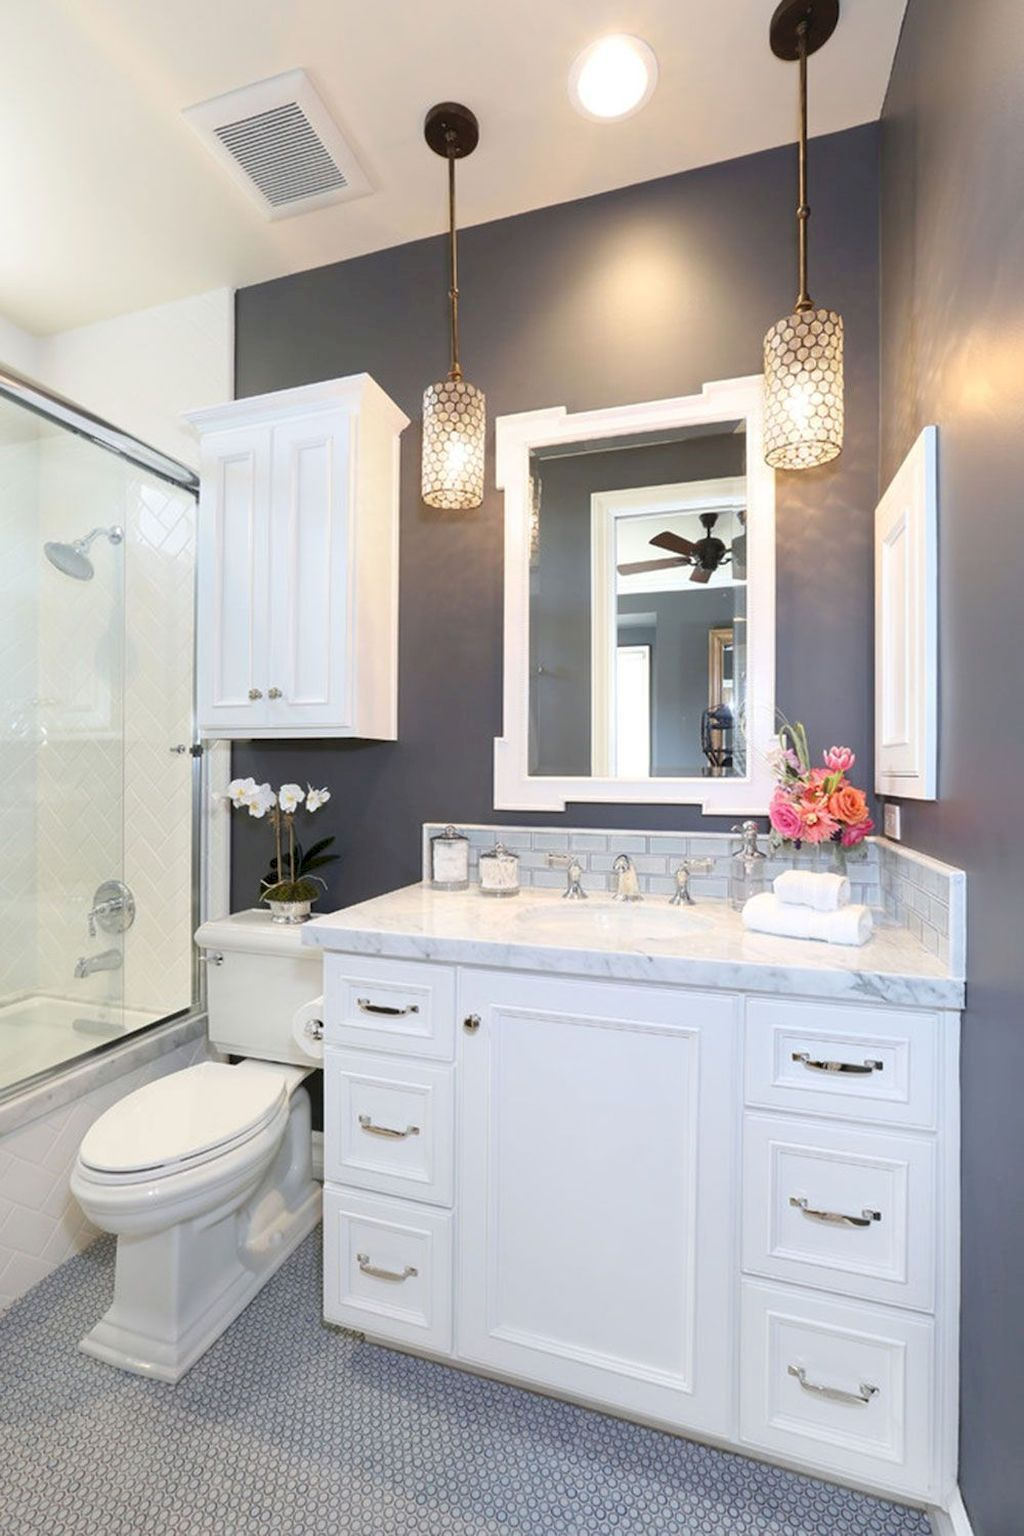 111 Awesome Small Bathroom Remodel Ideas On A Budget | Small ...